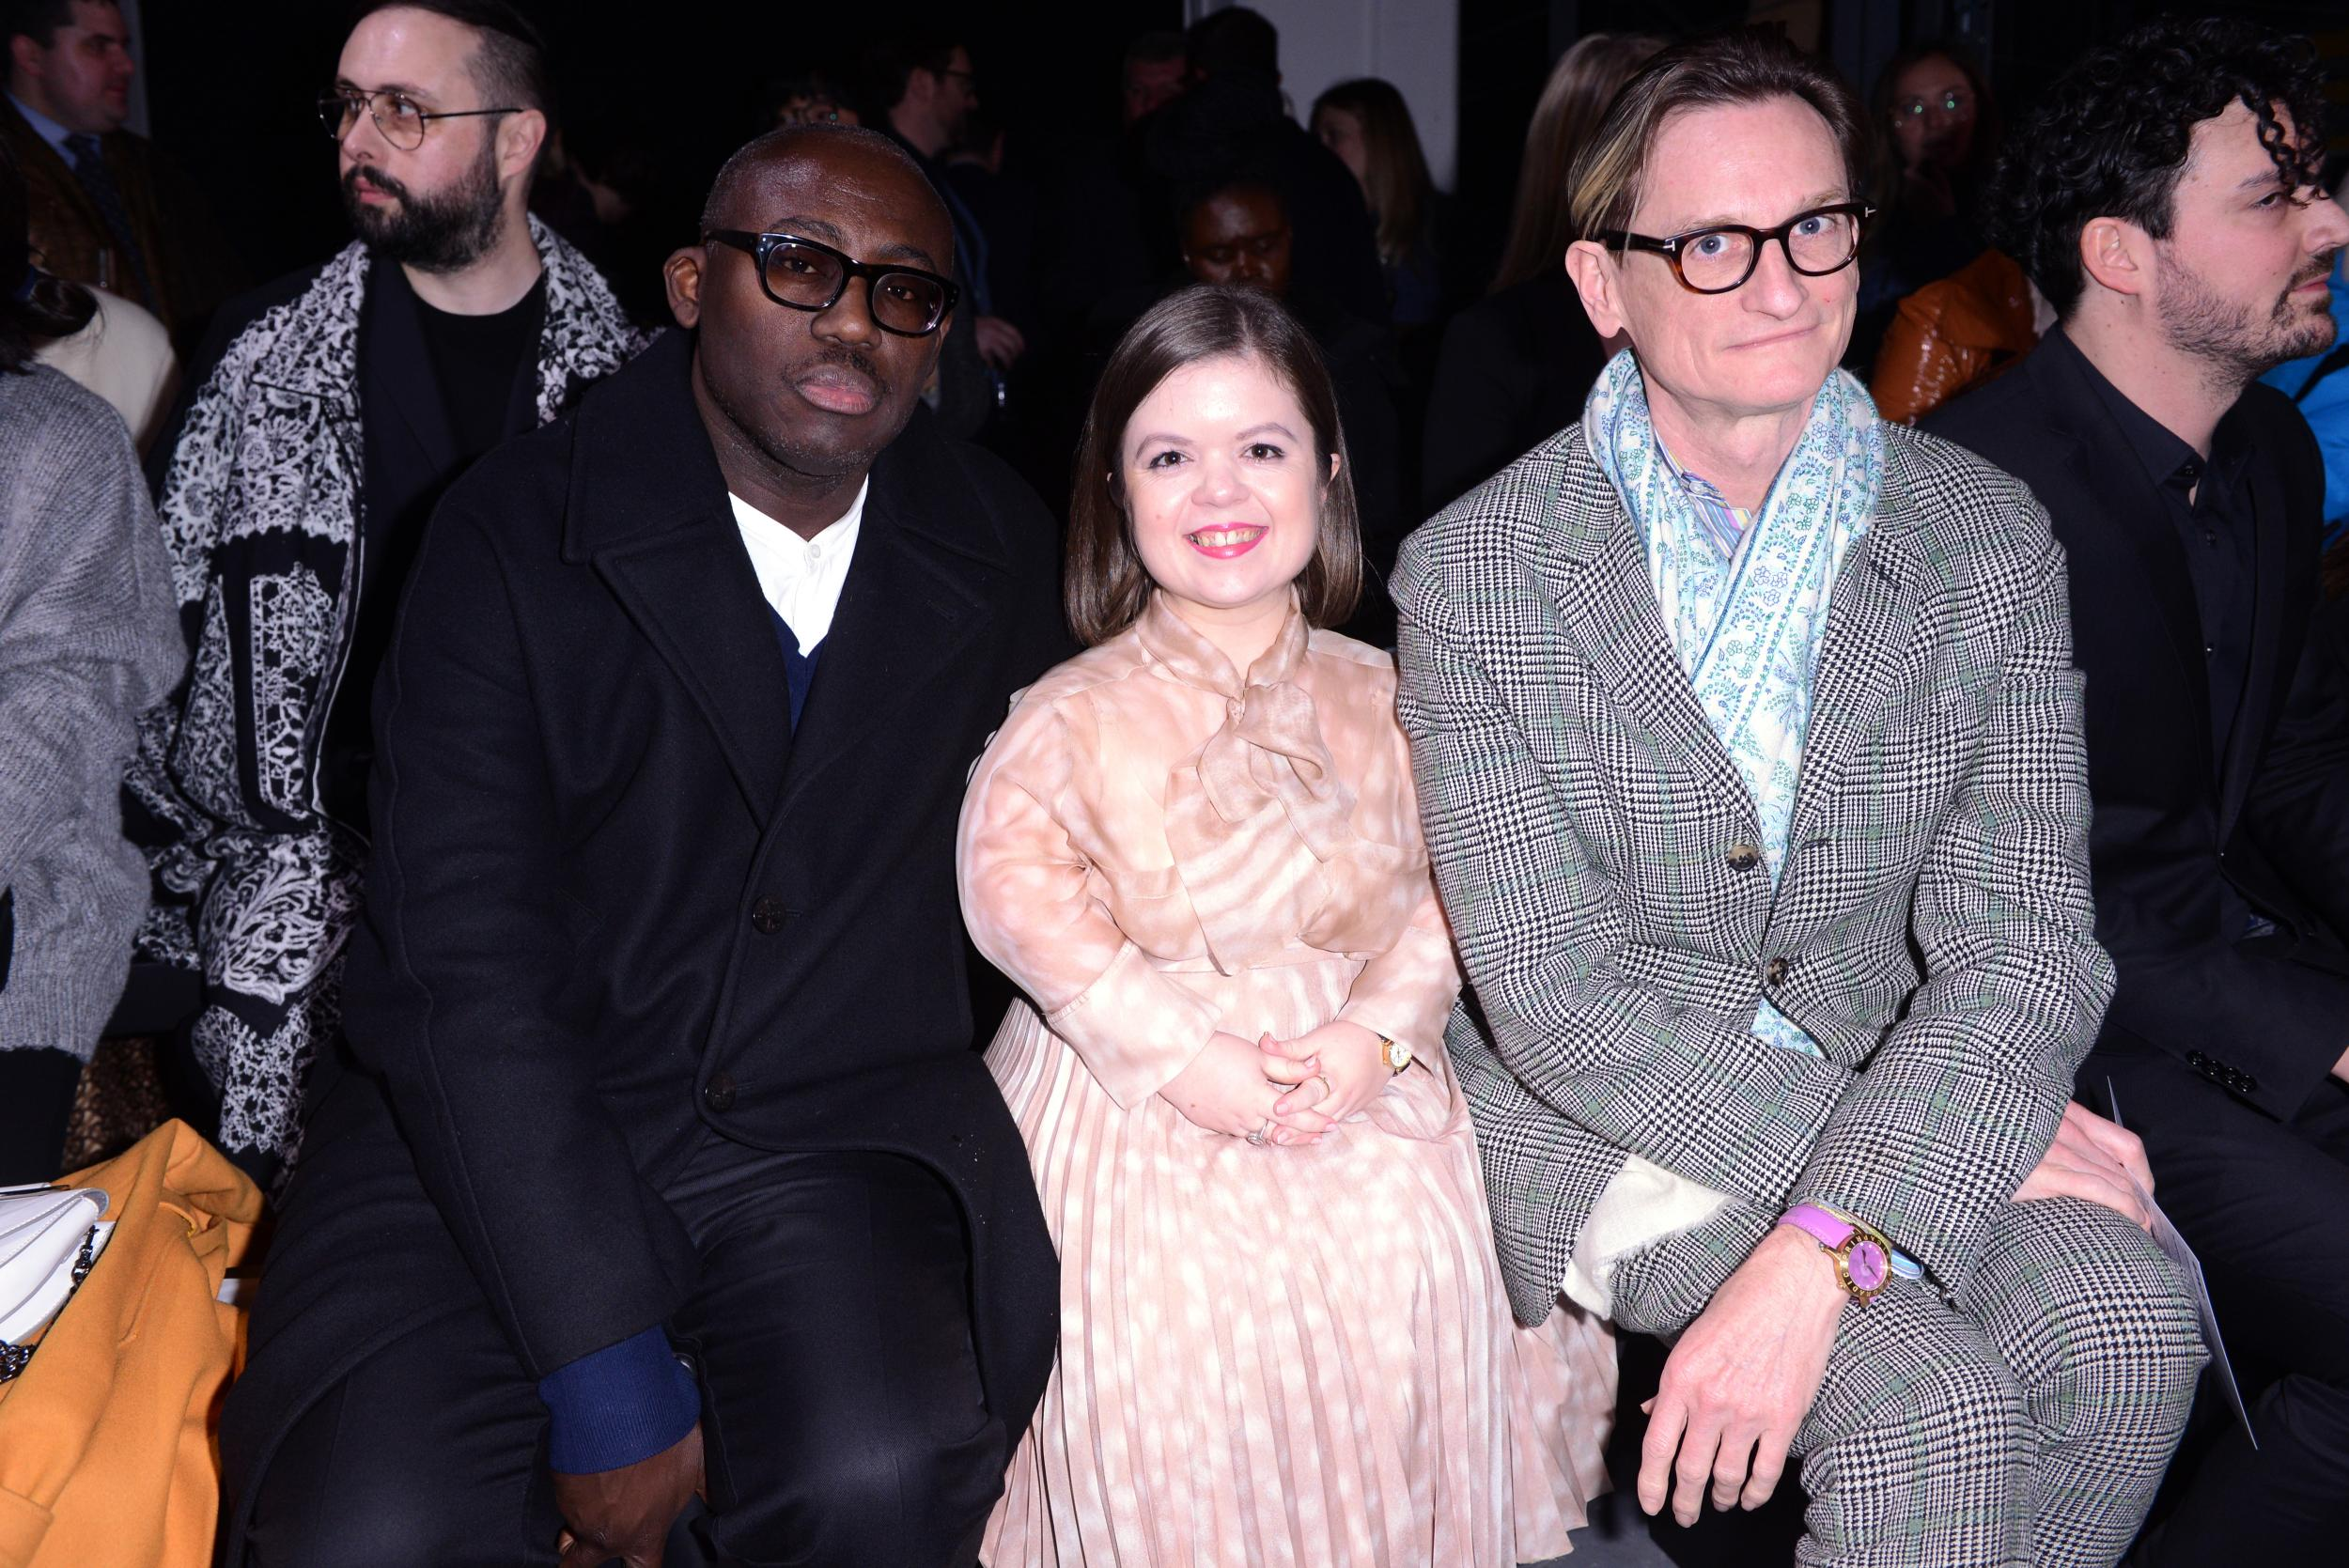 Edward Enninful, Sinéad Burke and Hamish Bowles